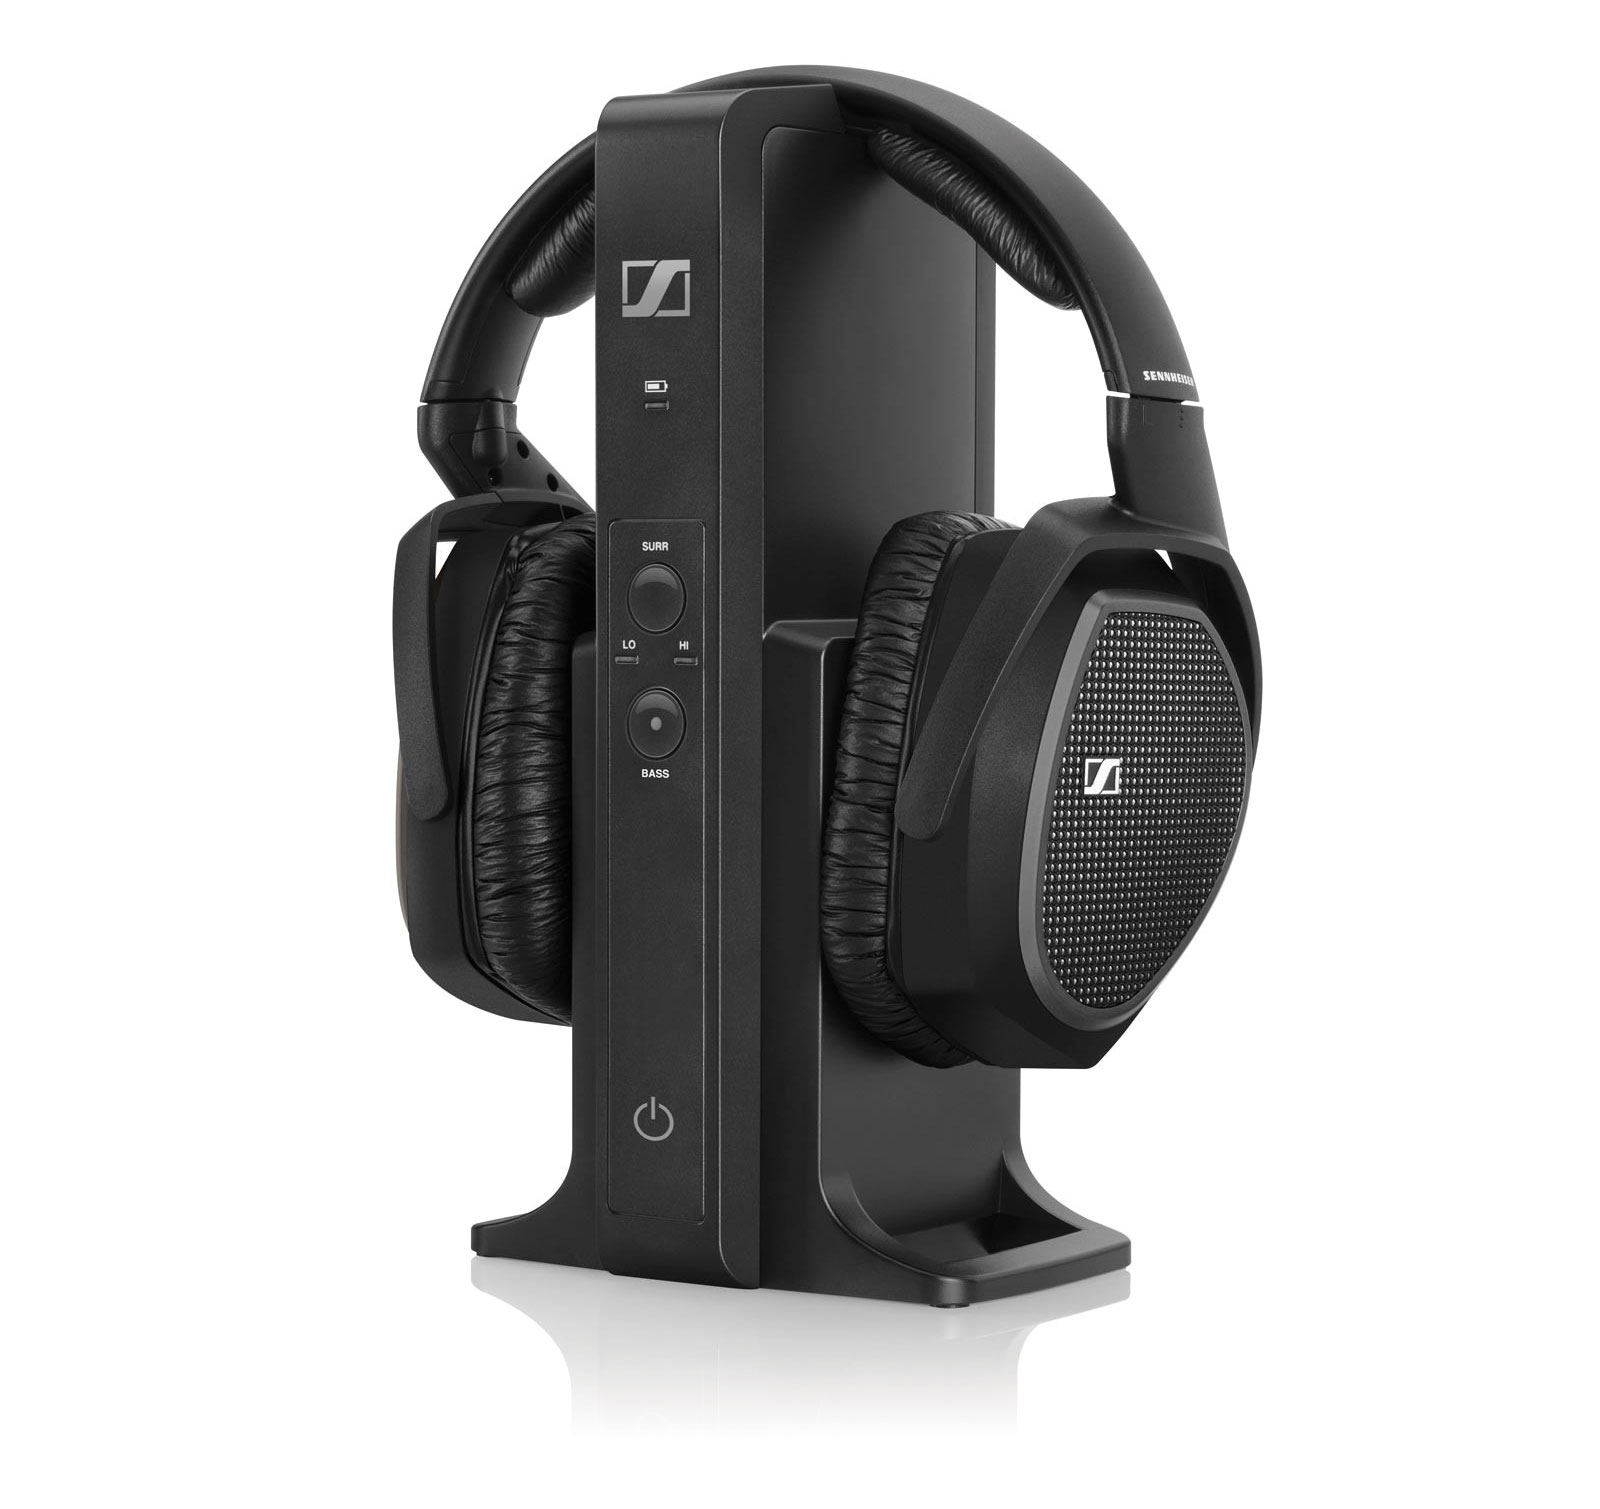 Sennheiser RS 175 TV Digital Wireless Headset Headphones